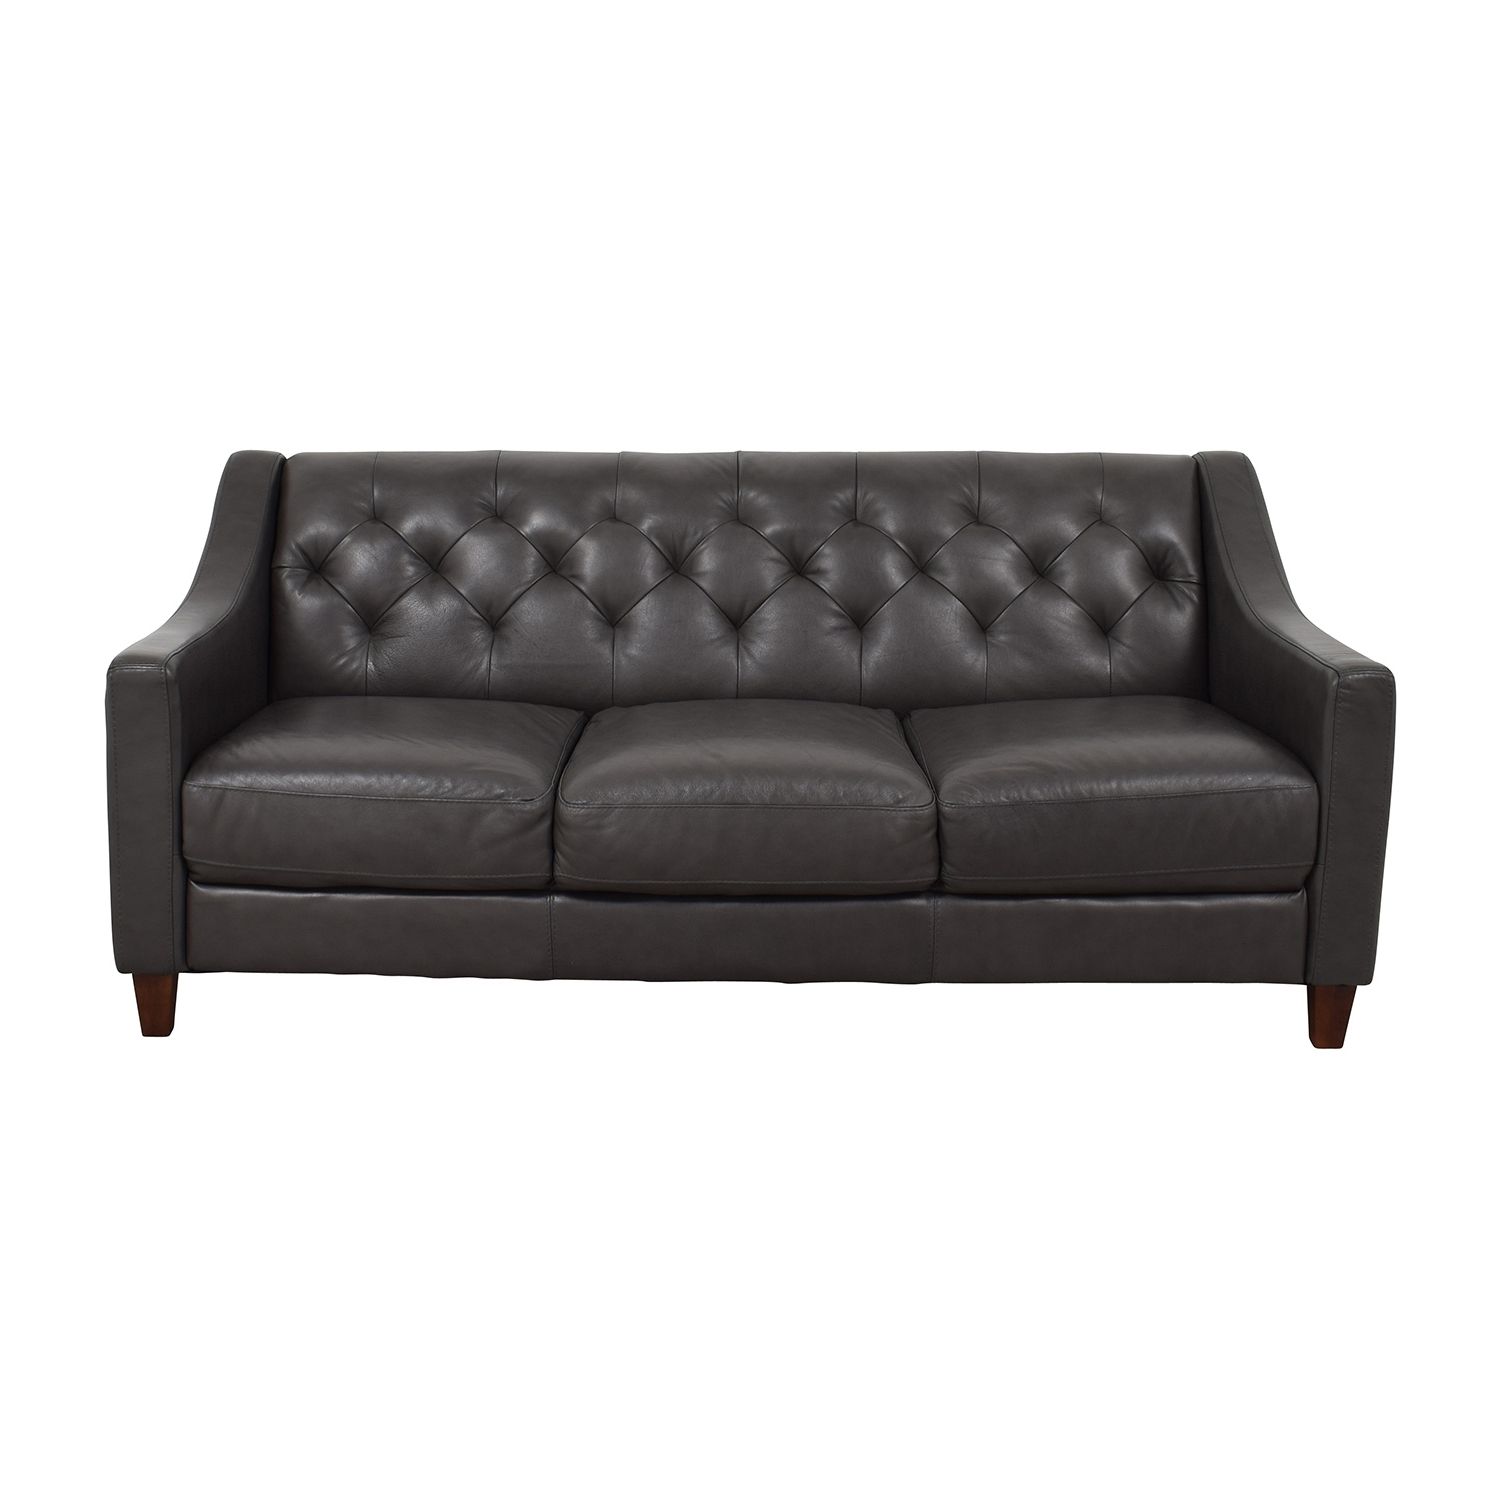 [%69% Off – Macy's Macy's Tufted Gray Leather Sofa / Sofas In Famous Macys Leather Sofas|Macys Leather Sofas Regarding Well Liked 69% Off – Macy's Macy's Tufted Gray Leather Sofa / Sofas|Most Popular Macys Leather Sofas Pertaining To 69% Off – Macy's Macy's Tufted Gray Leather Sofa / Sofas|Well Liked 69% Off – Macy's Macy's Tufted Gray Leather Sofa / Sofas In Macys Leather Sofas%] (View 2 of 20)